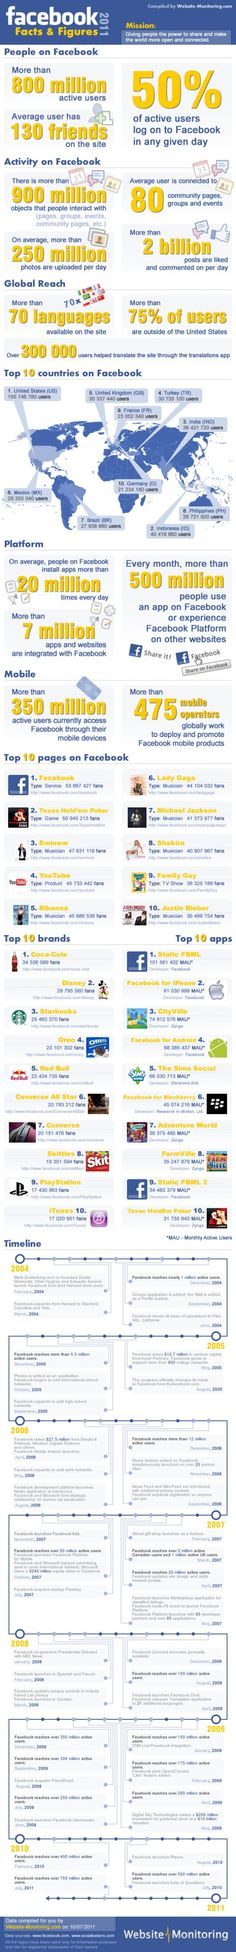 Facebook Facts and Figures 2011